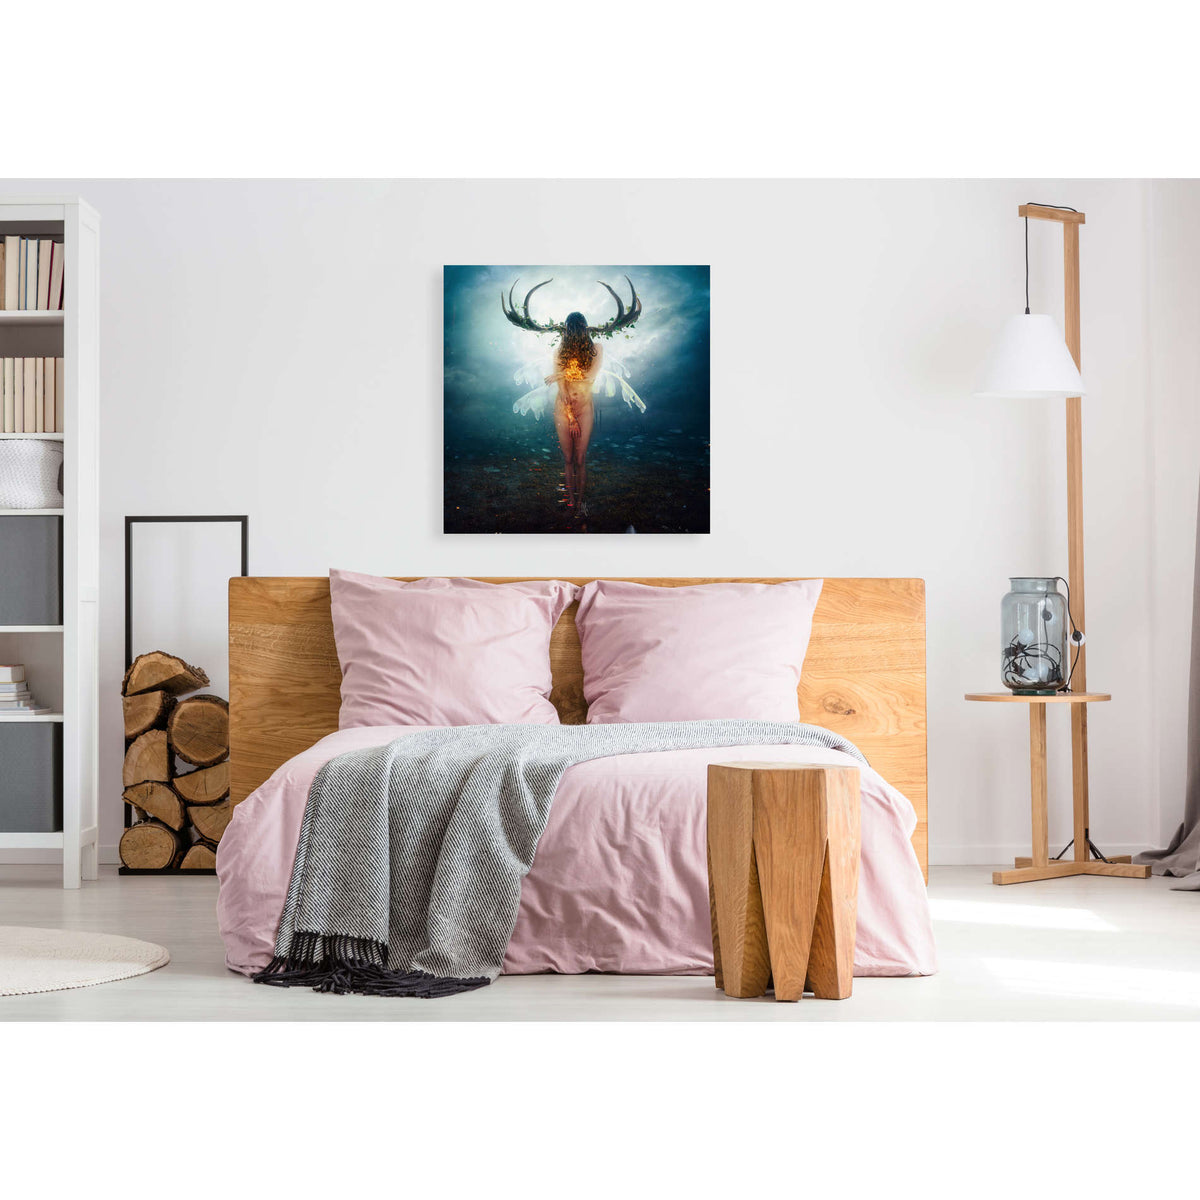 Cortesi Home 'Shelter' by Mario Sanchez Nevado, Canvas Wall Art,40 x 40